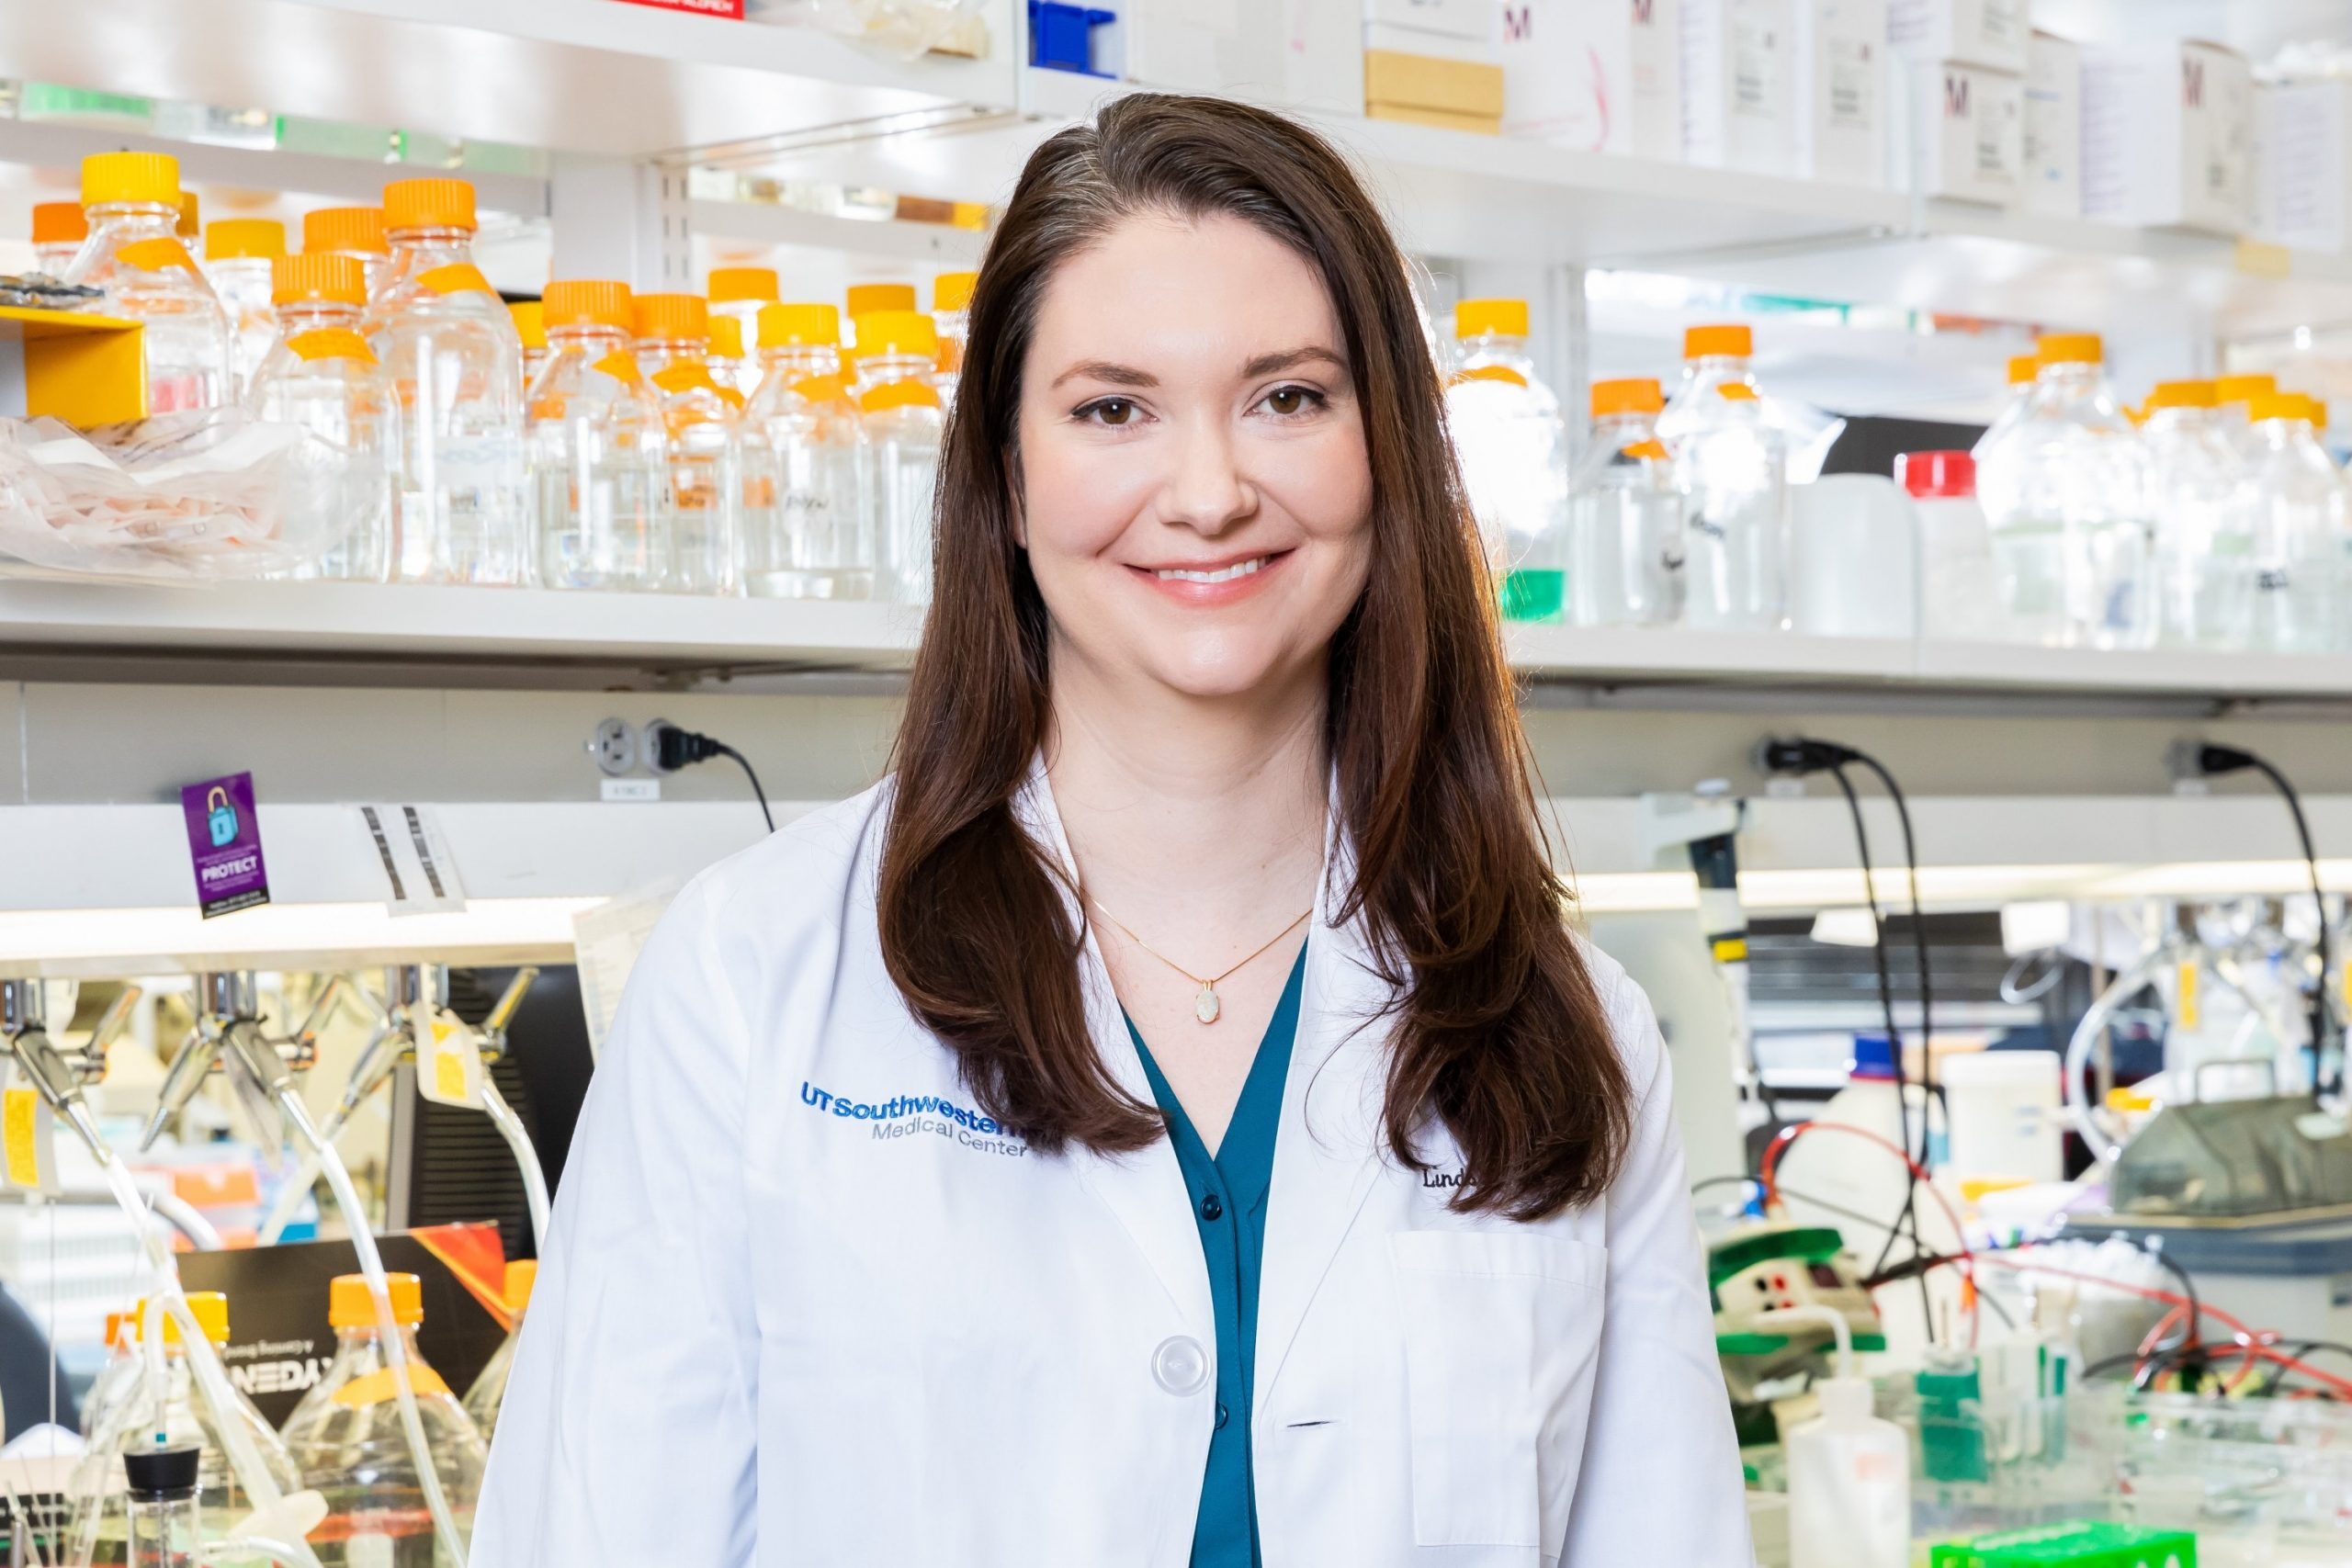 3 Questions: Lindsay Case on how cells get organized and sense the world